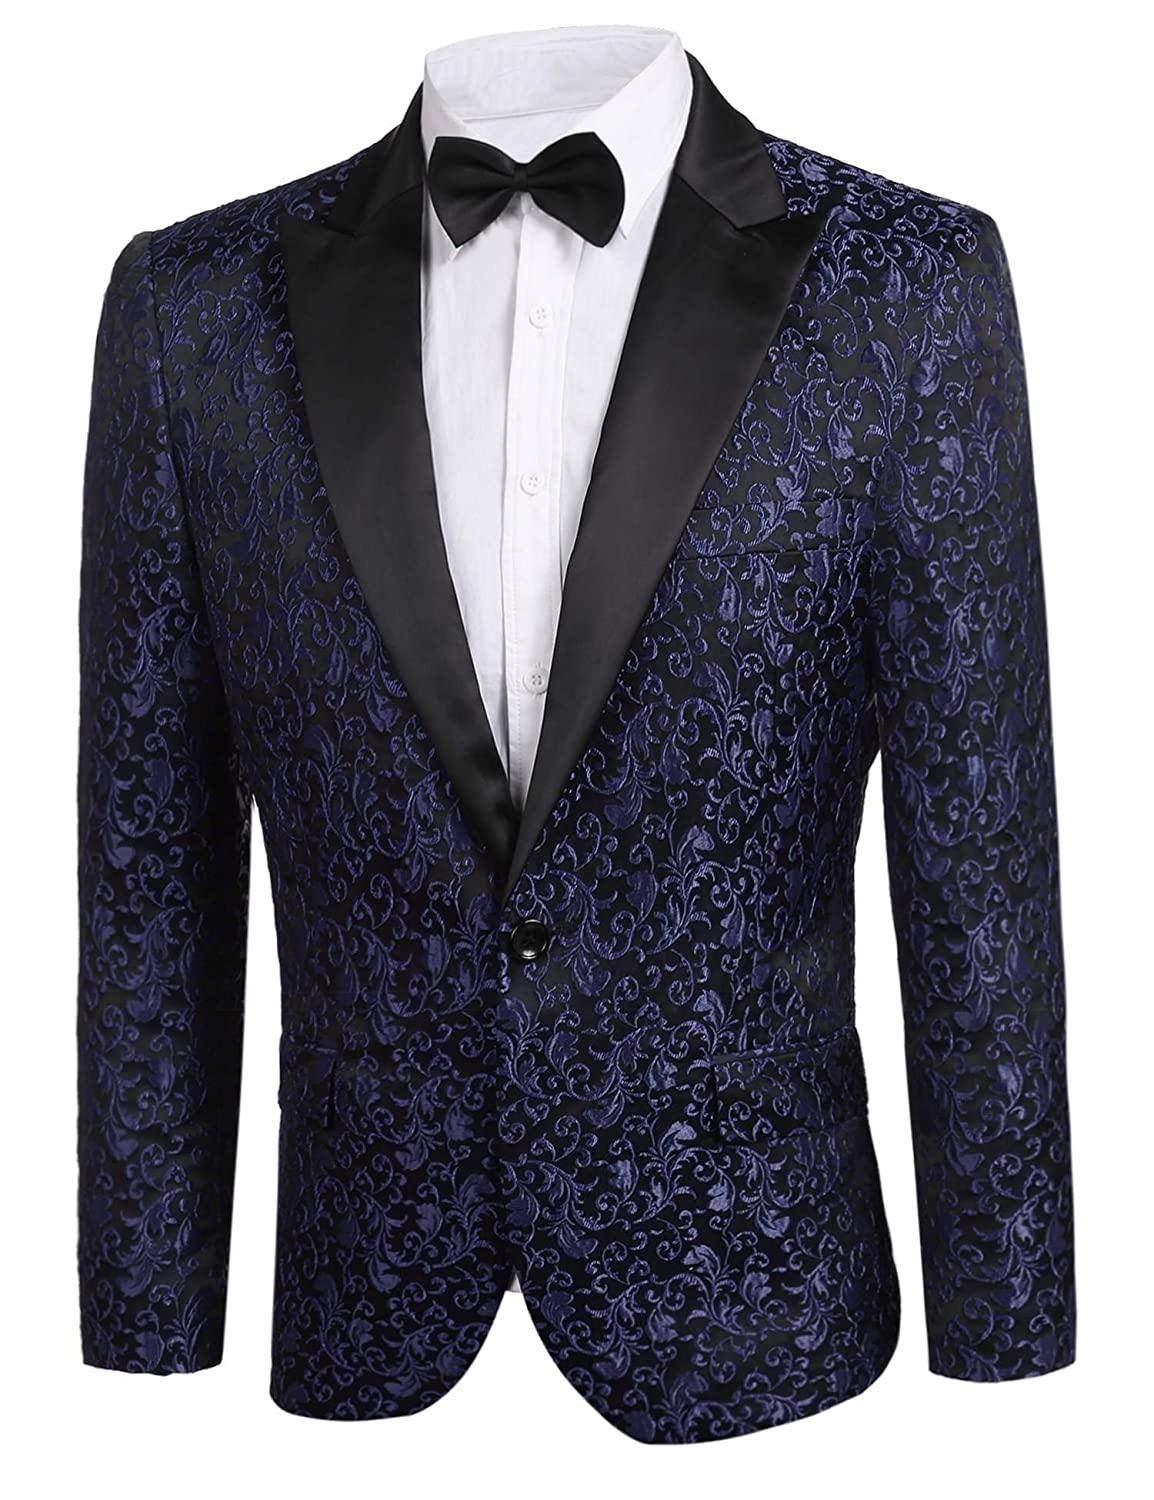 JINIDU Mens Floral Party Dress Suit Stylish Dinner Jacket Wedding Blazer Prom Tuxedo